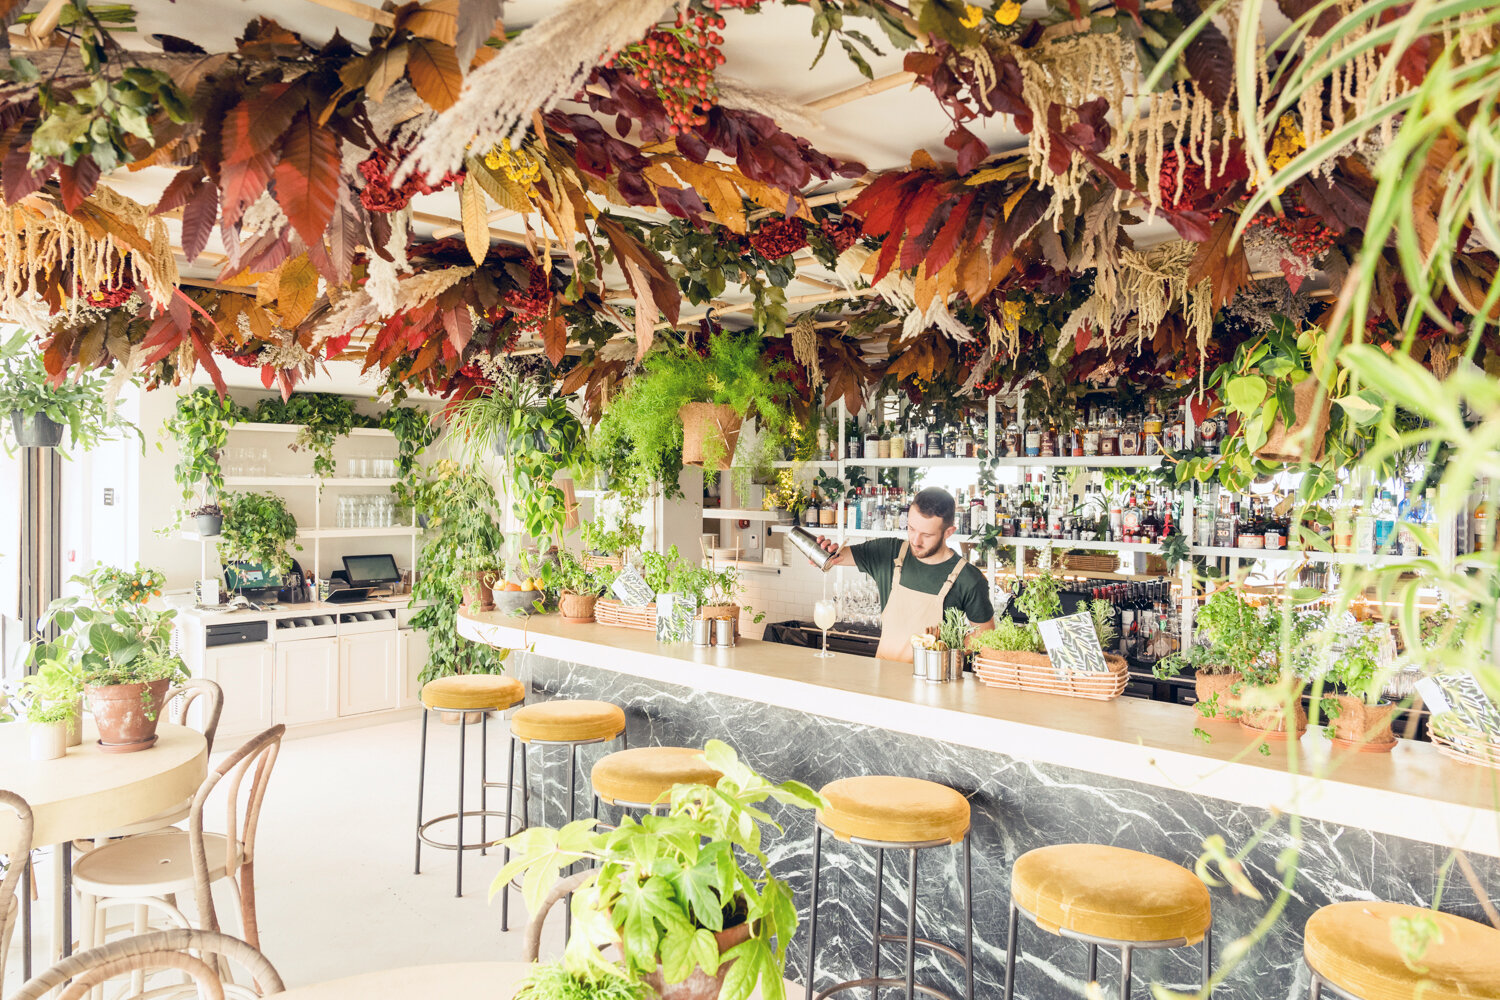 A/W 19 Installation - An ode to the seasons - become immersed in our stunning new installation